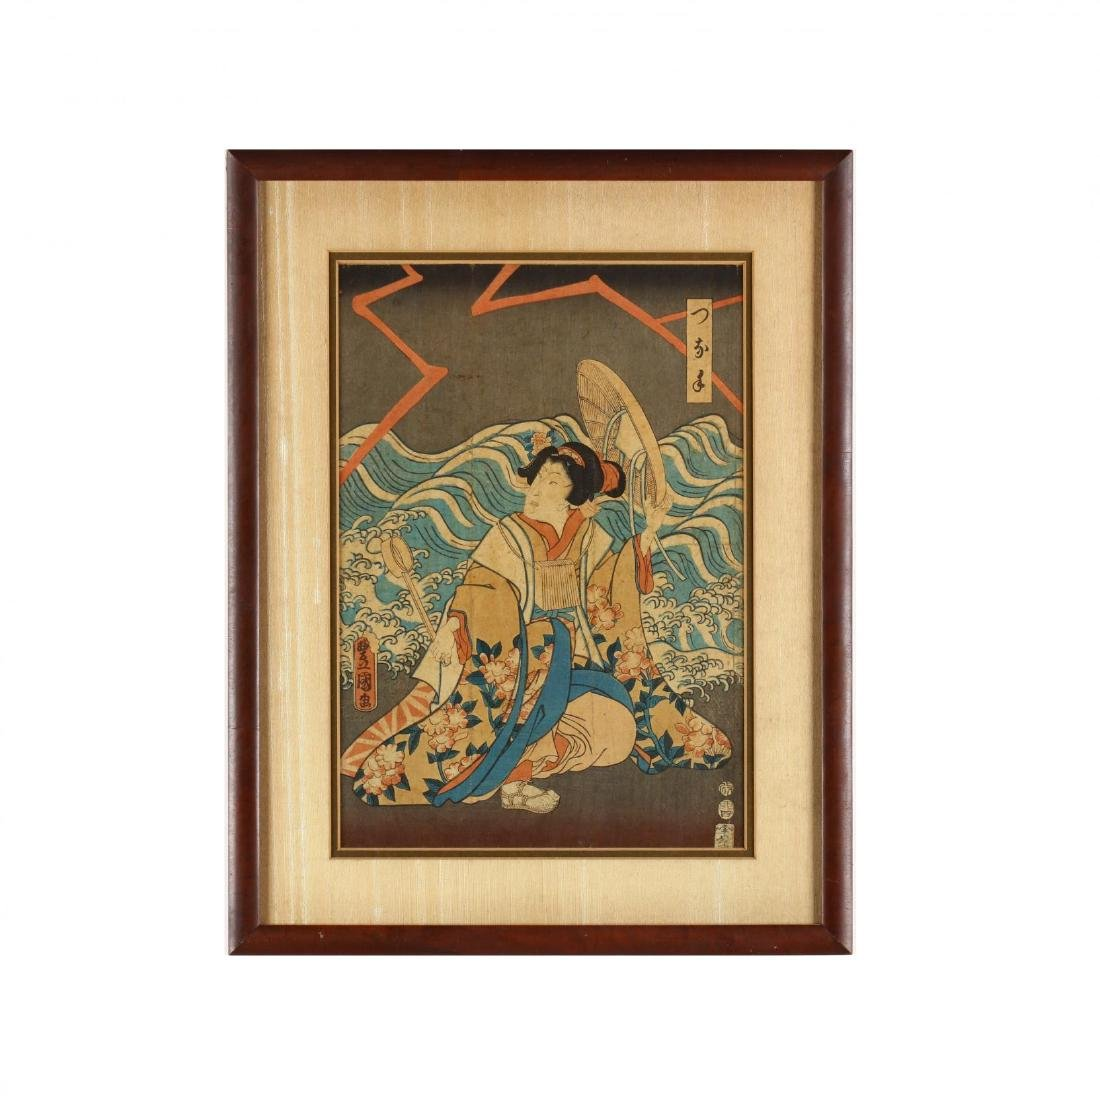 Two Japanese Woodblock Prints by Kunisada and Kuniyoshi - 7